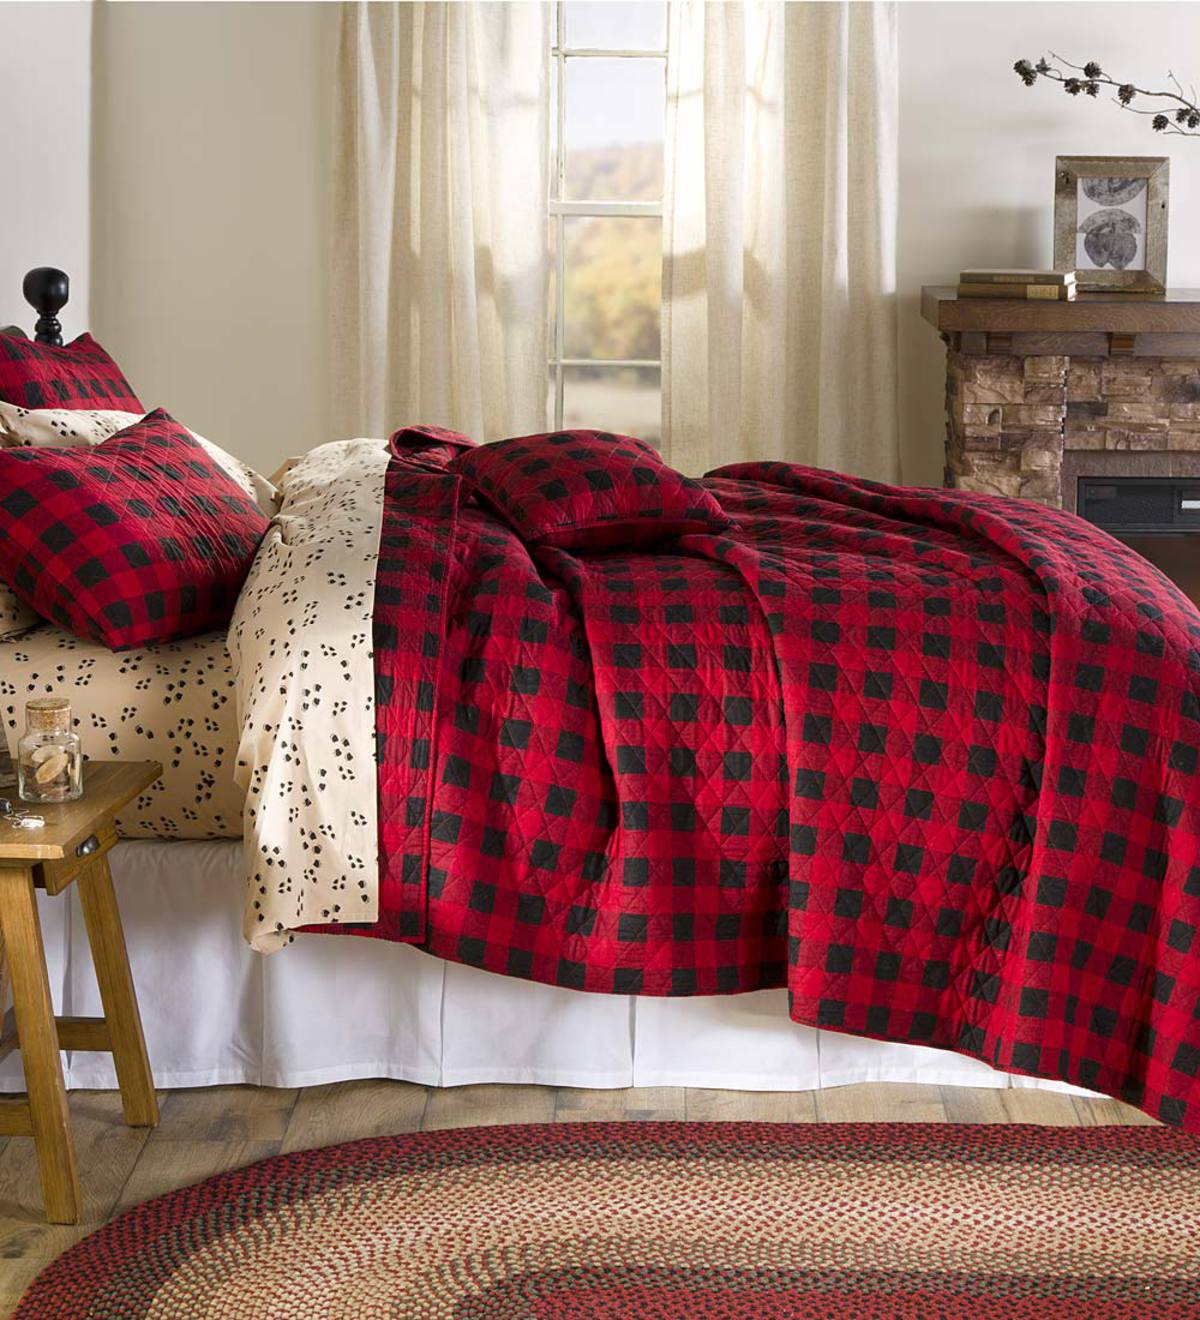 BUFFALO CHECK RED /& BLACK QUEEN BED QUILT By PARK DESIGNS//COUNTRY BEDDING